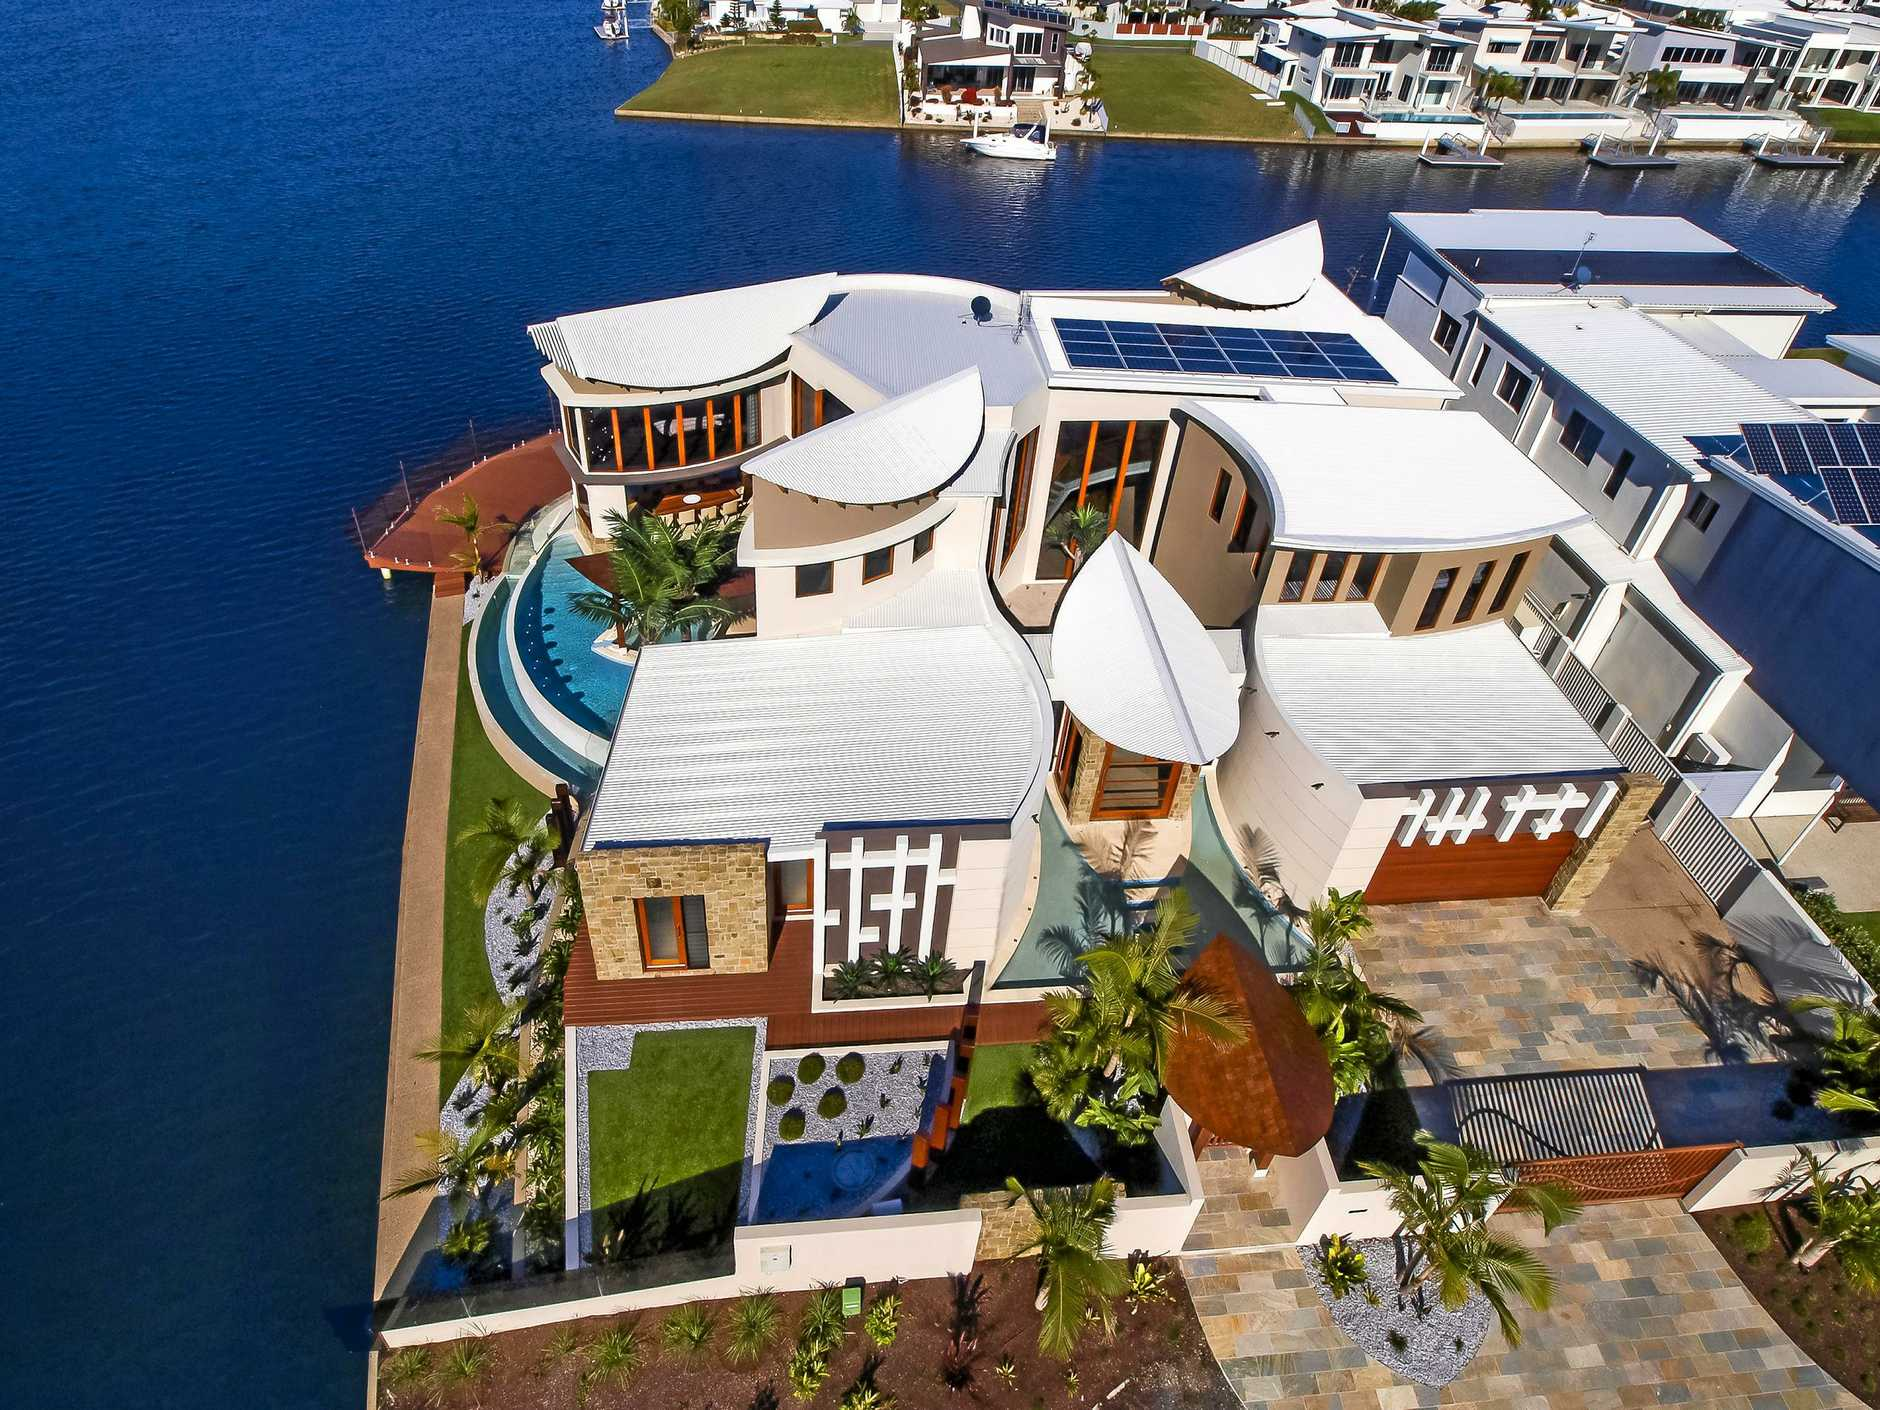 The unique home at 6 Rainbow Lane has been featured on Grand Designs Australia and Australia's Best Homes, and won numerous national awards.